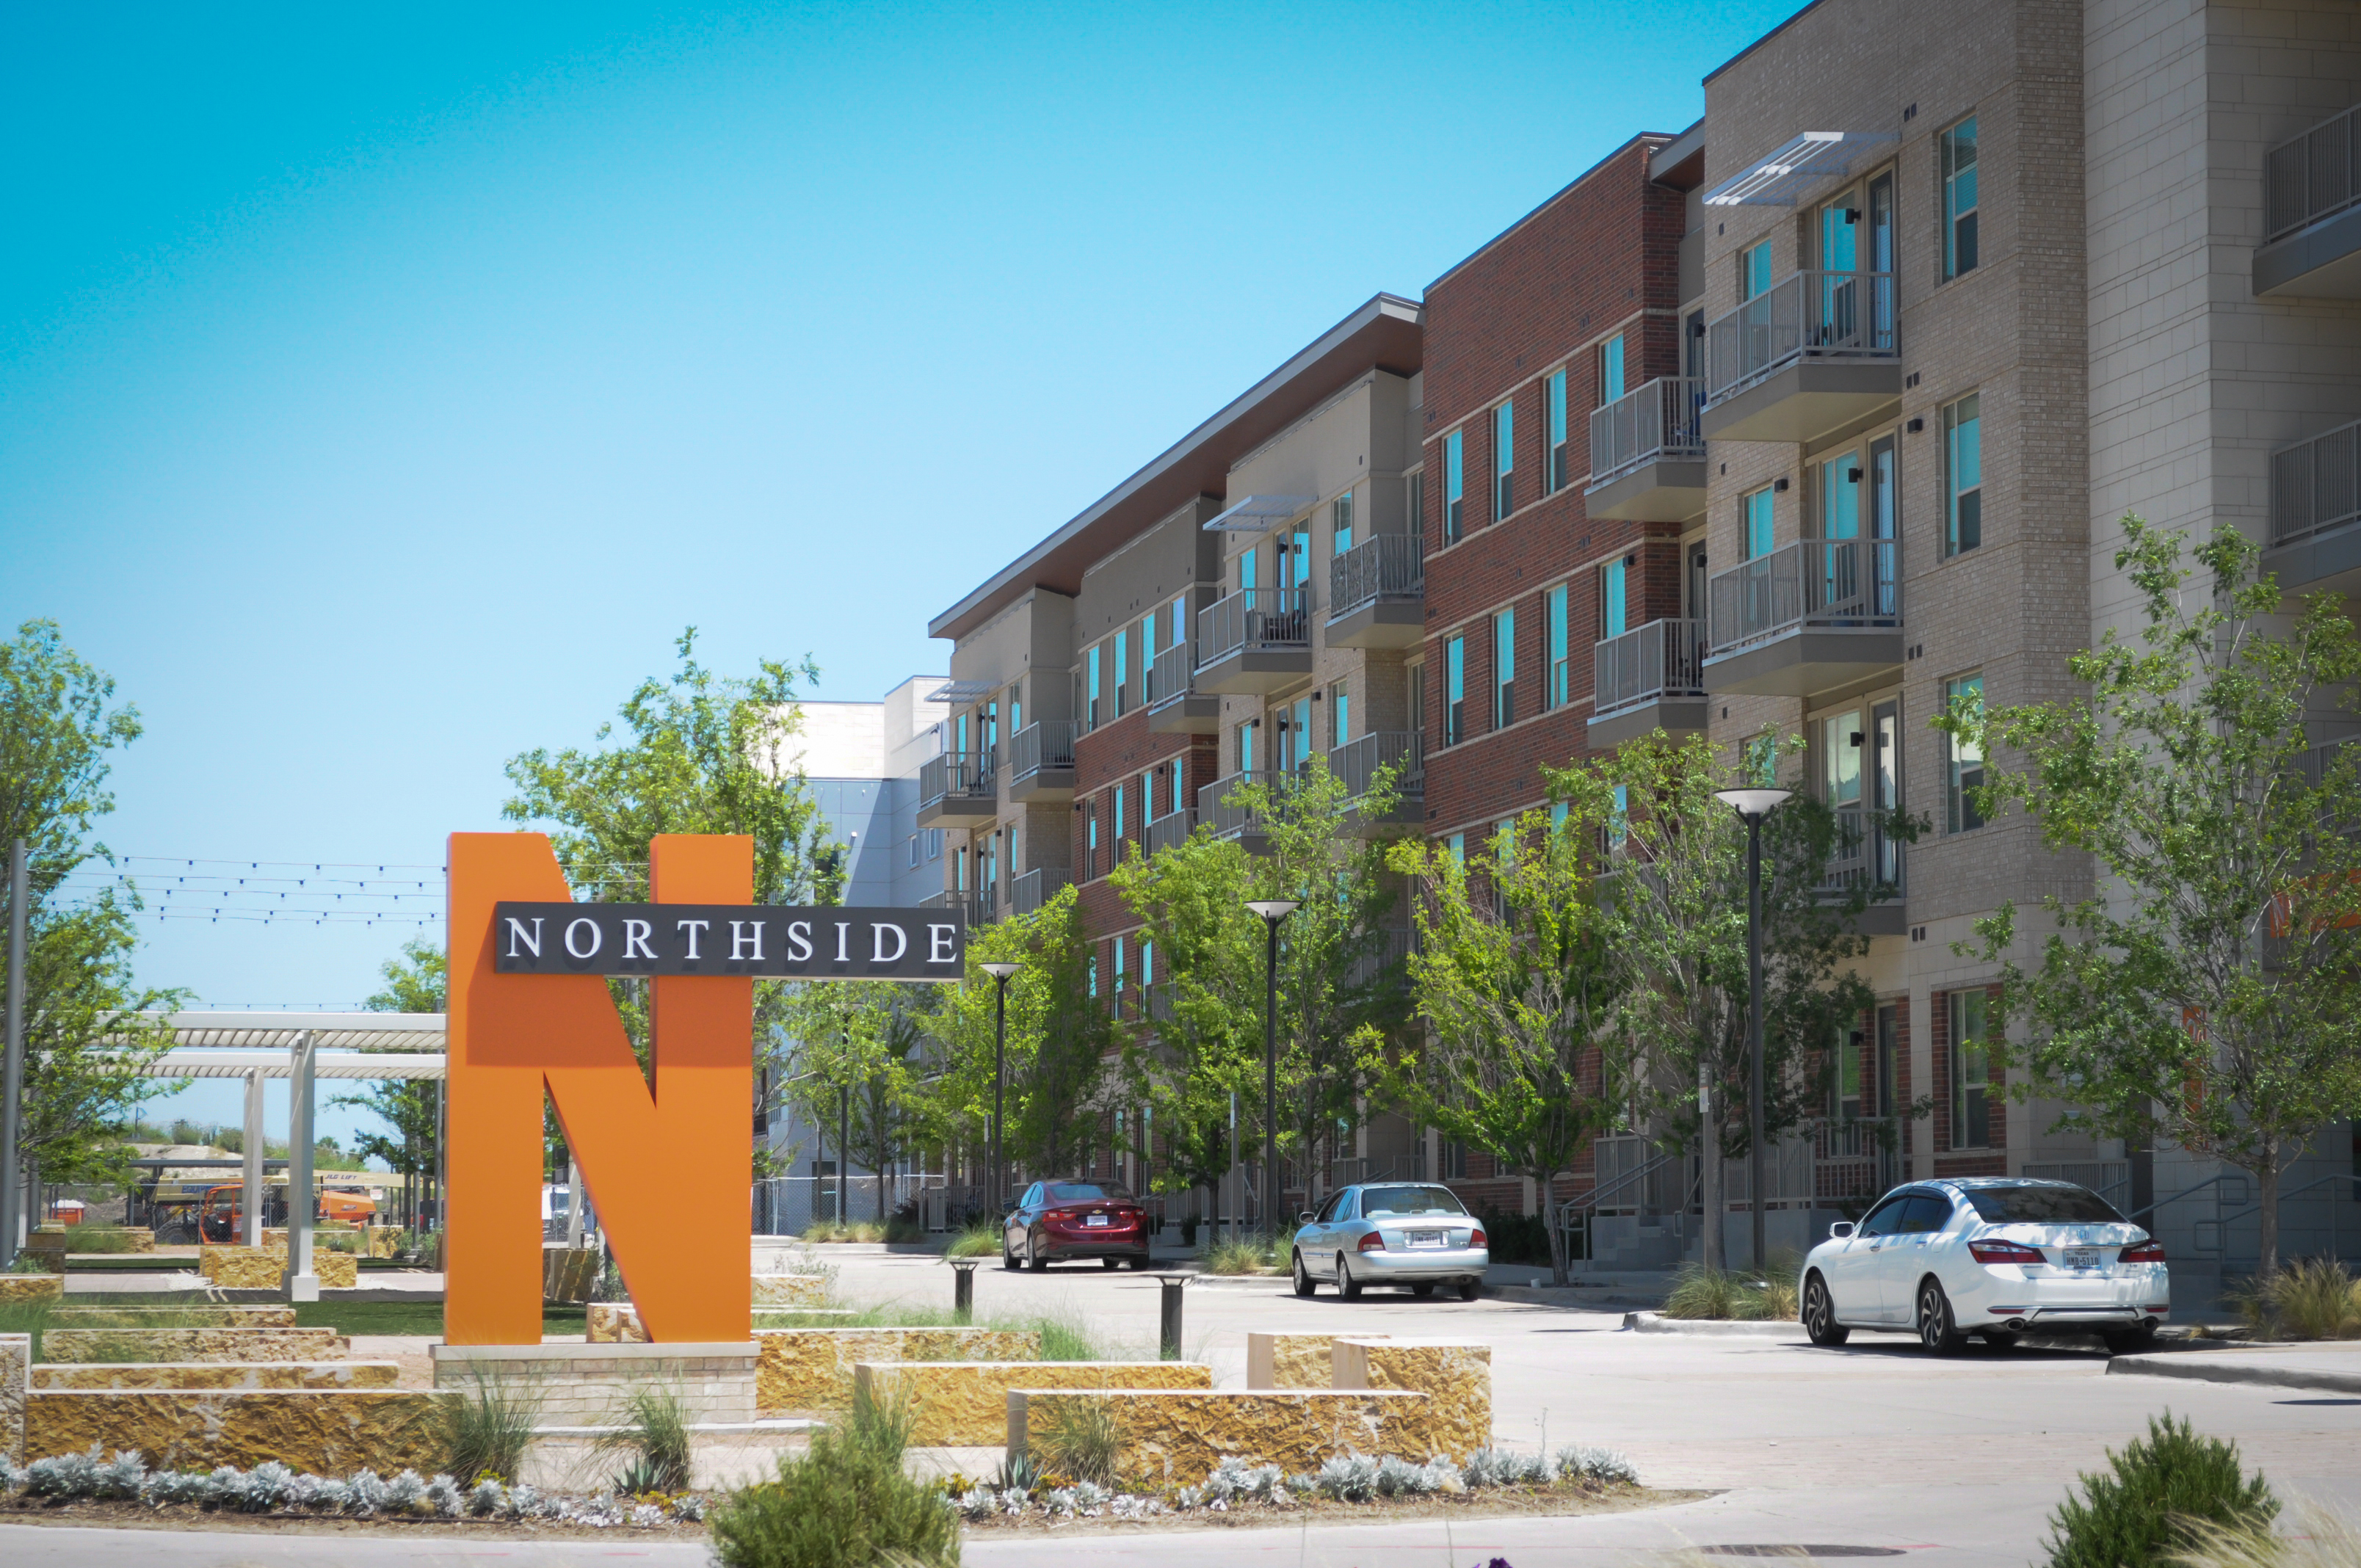 Students report fear, anger after false reports of active shooters at Northside